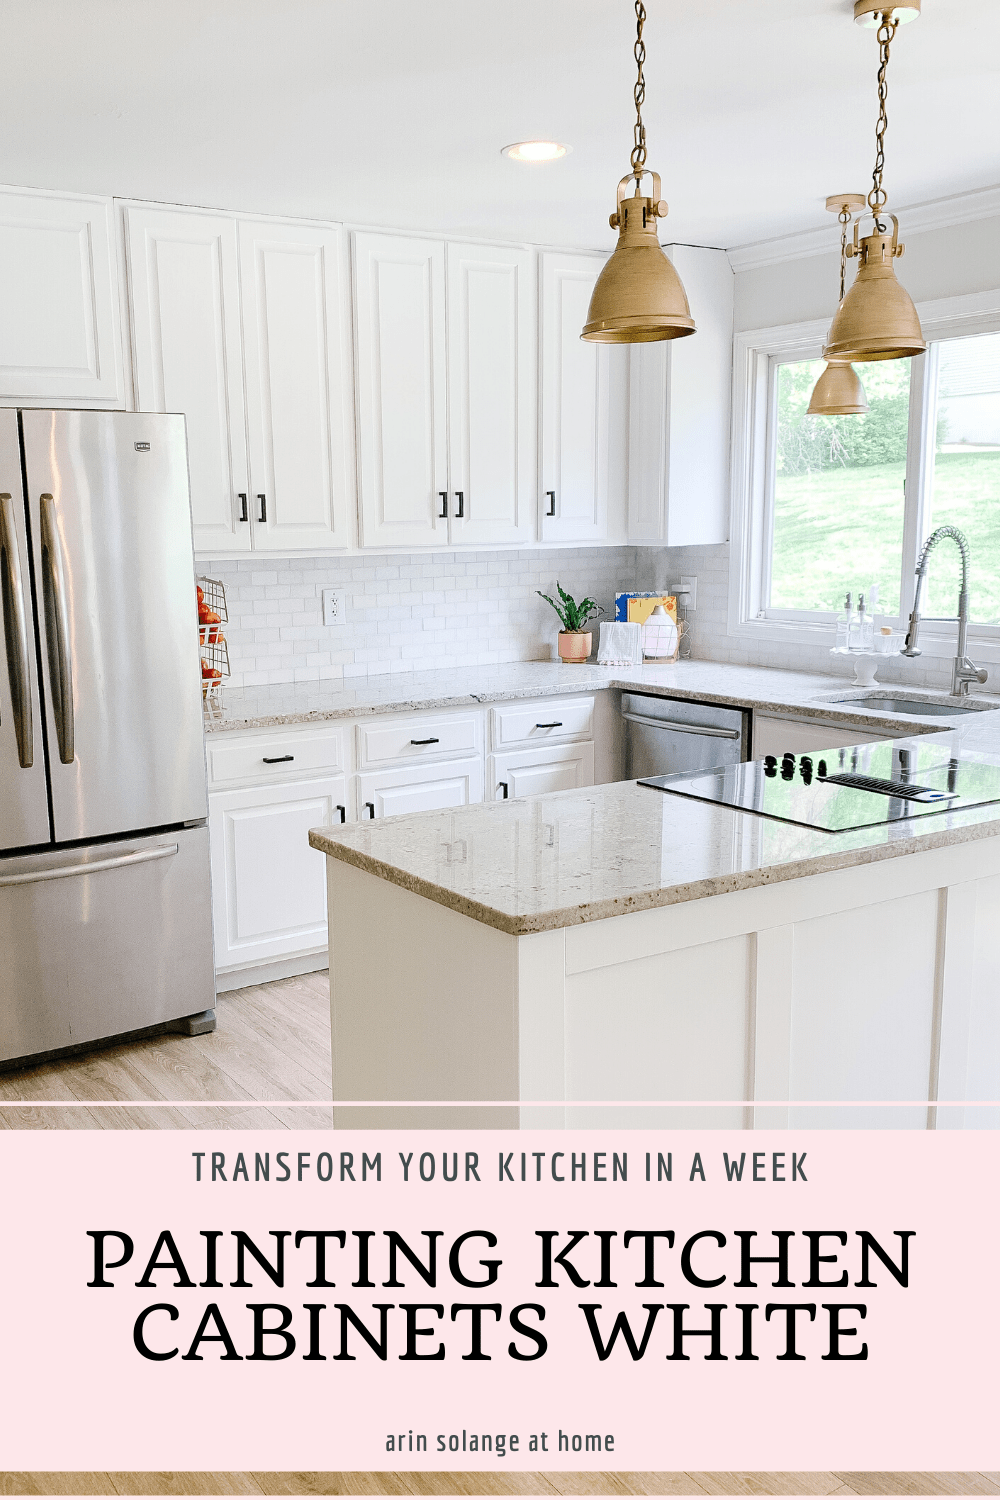 Painting kitchen cabinets white to last - check out how I transformed our kitchen on a budget, and made these cabinets to last #paintingkitchen #paintedcabinets #whitekitchen